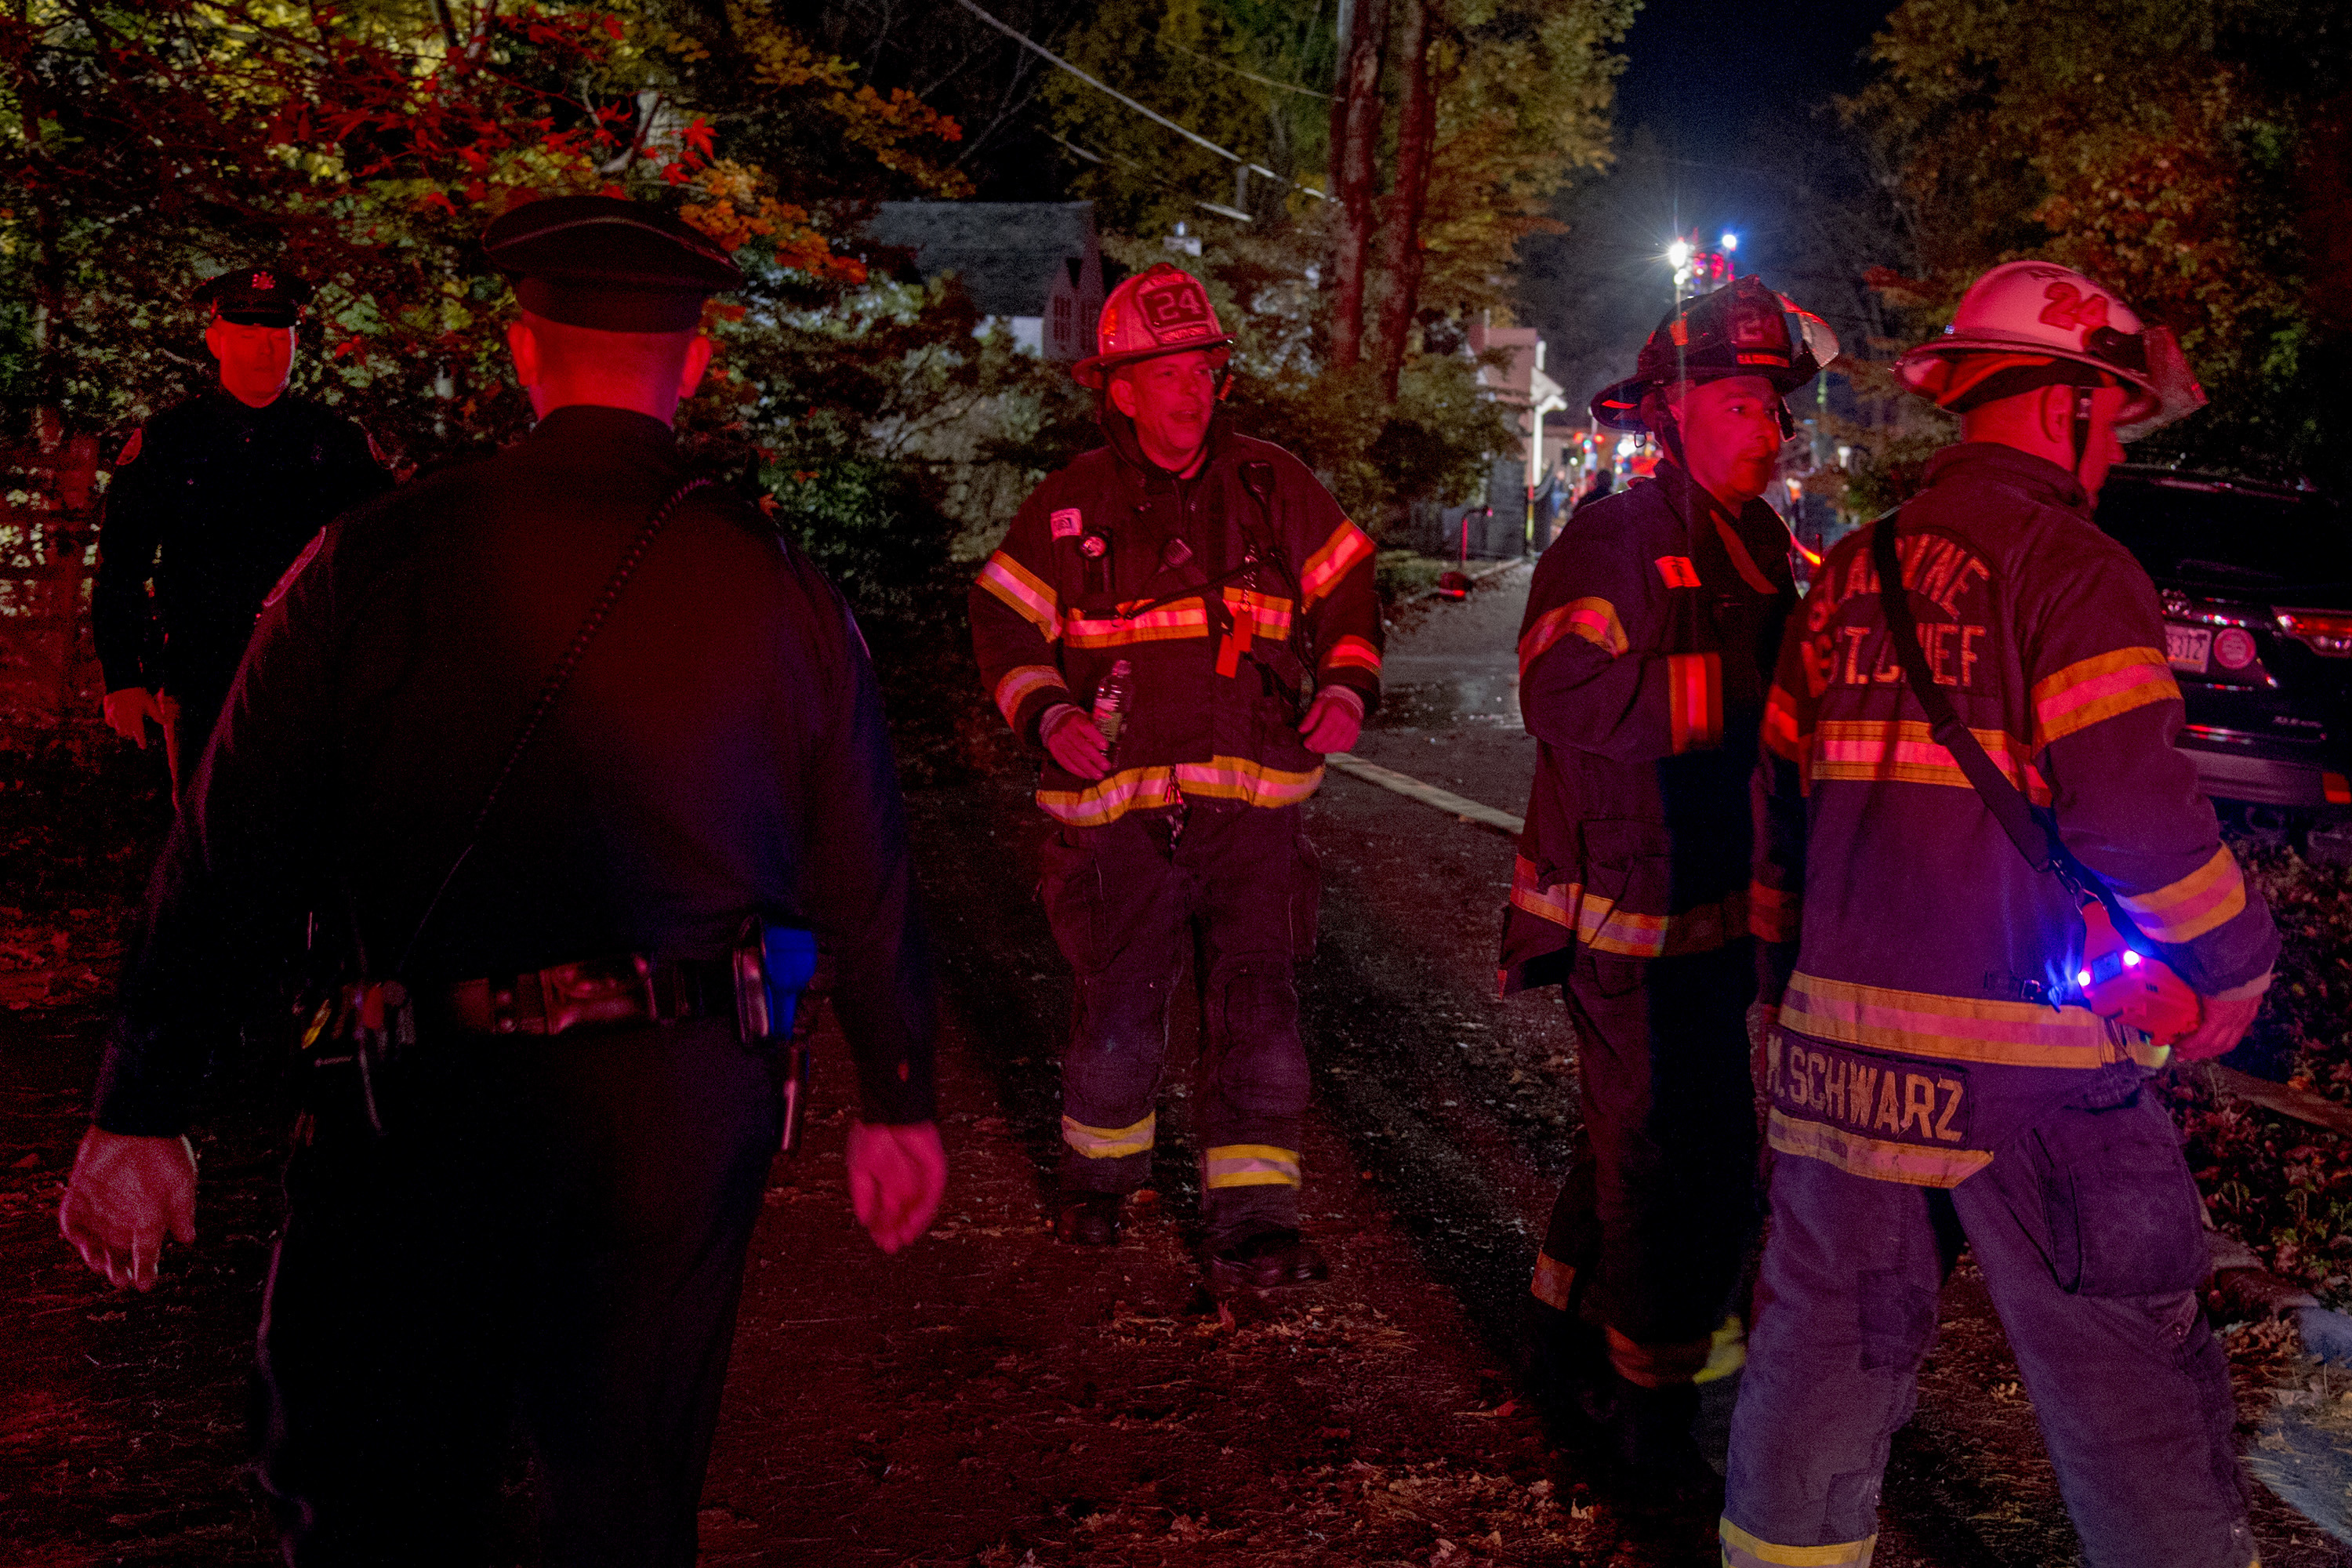 The scene at the house on Dodds Lane in Gladwyne November 4, 2018 were there was an explosion, so loud it could be heard for miles.